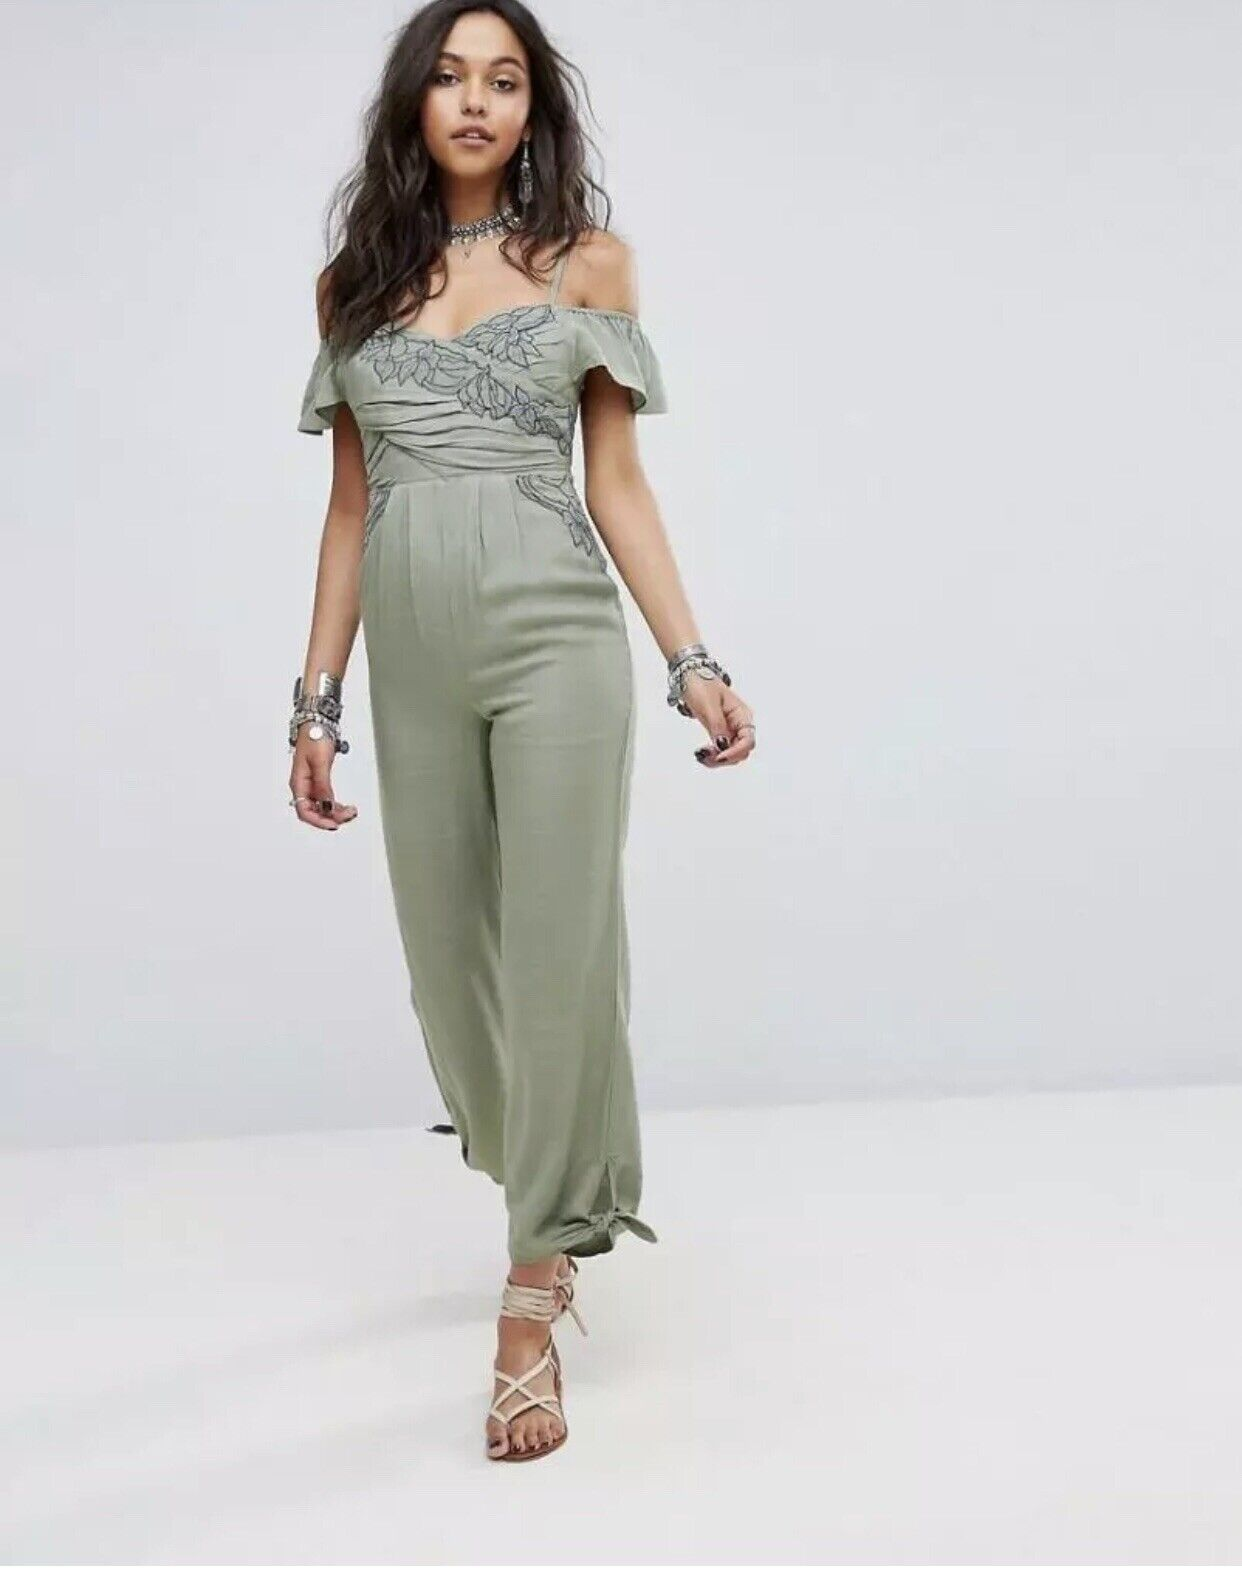 Free People Women's In the Moment Cold Shoulder Cut out Green Jumpsuit Size 0